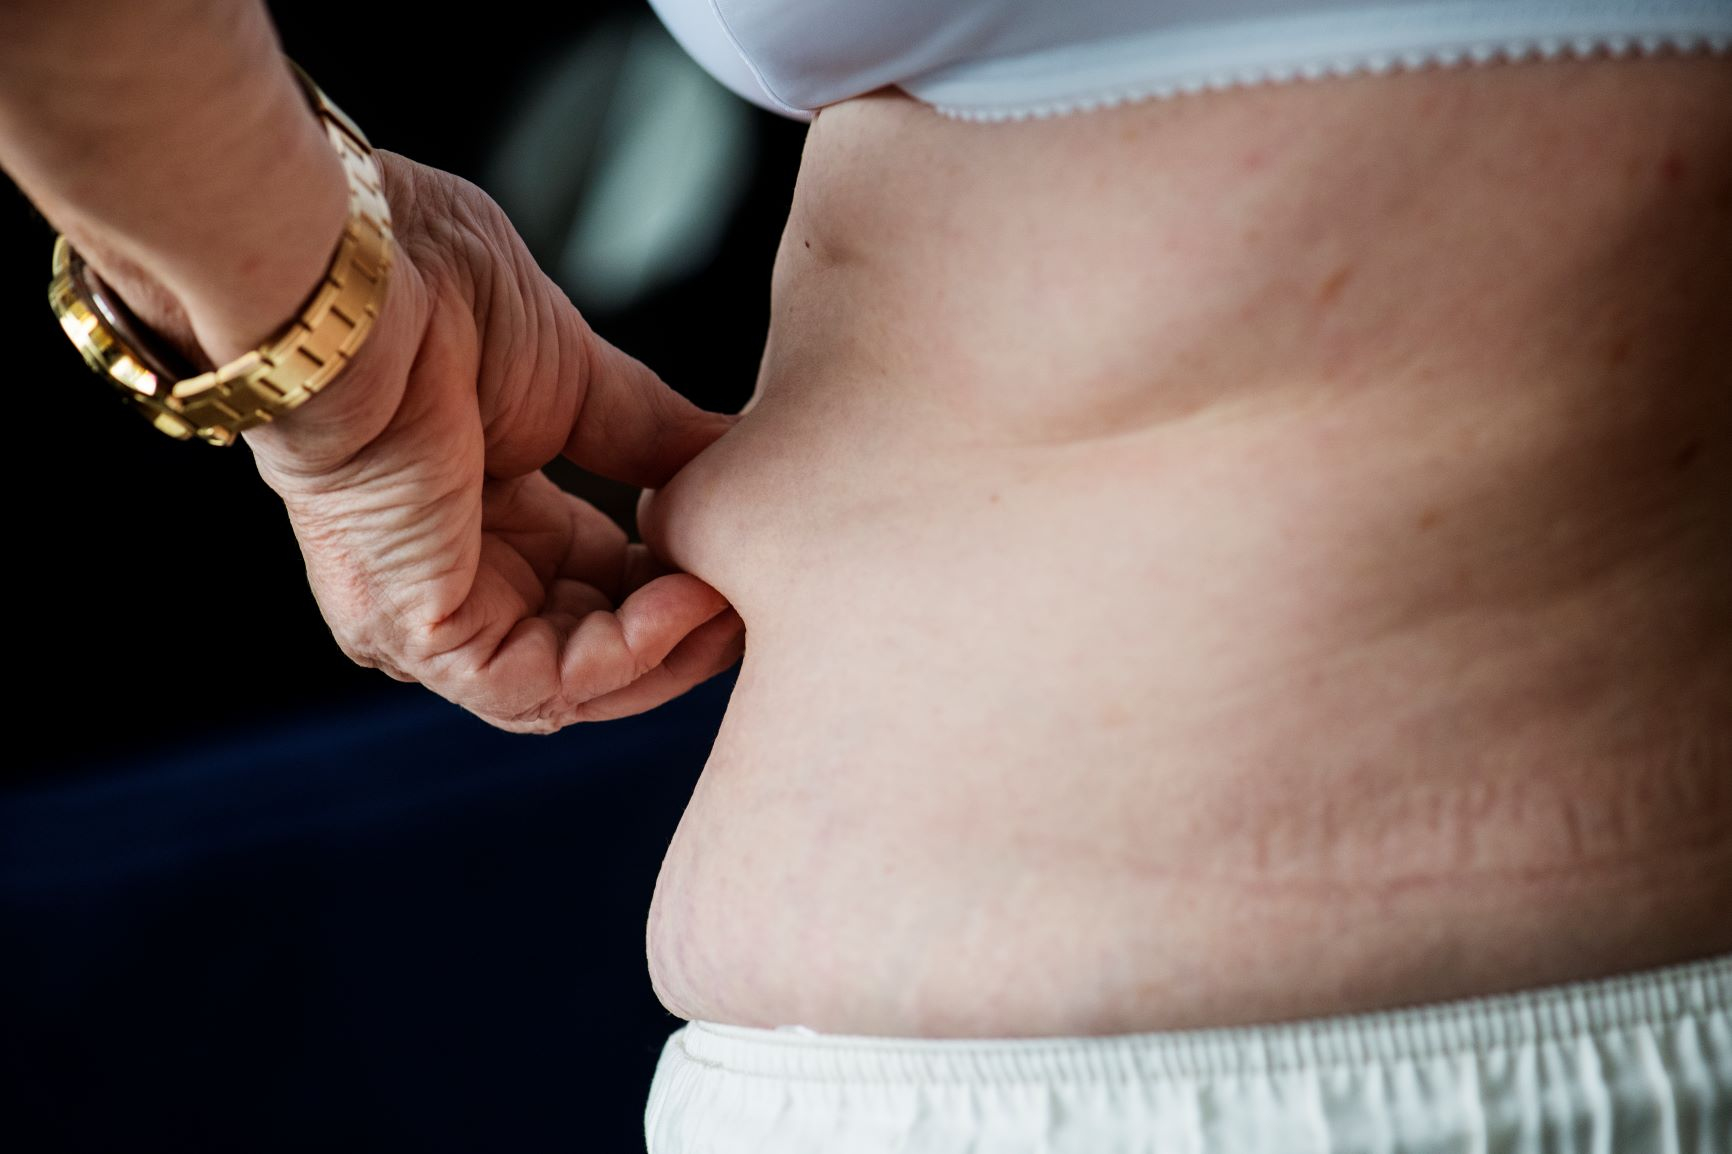 Older adults with obesity may have fewer years of healthy life